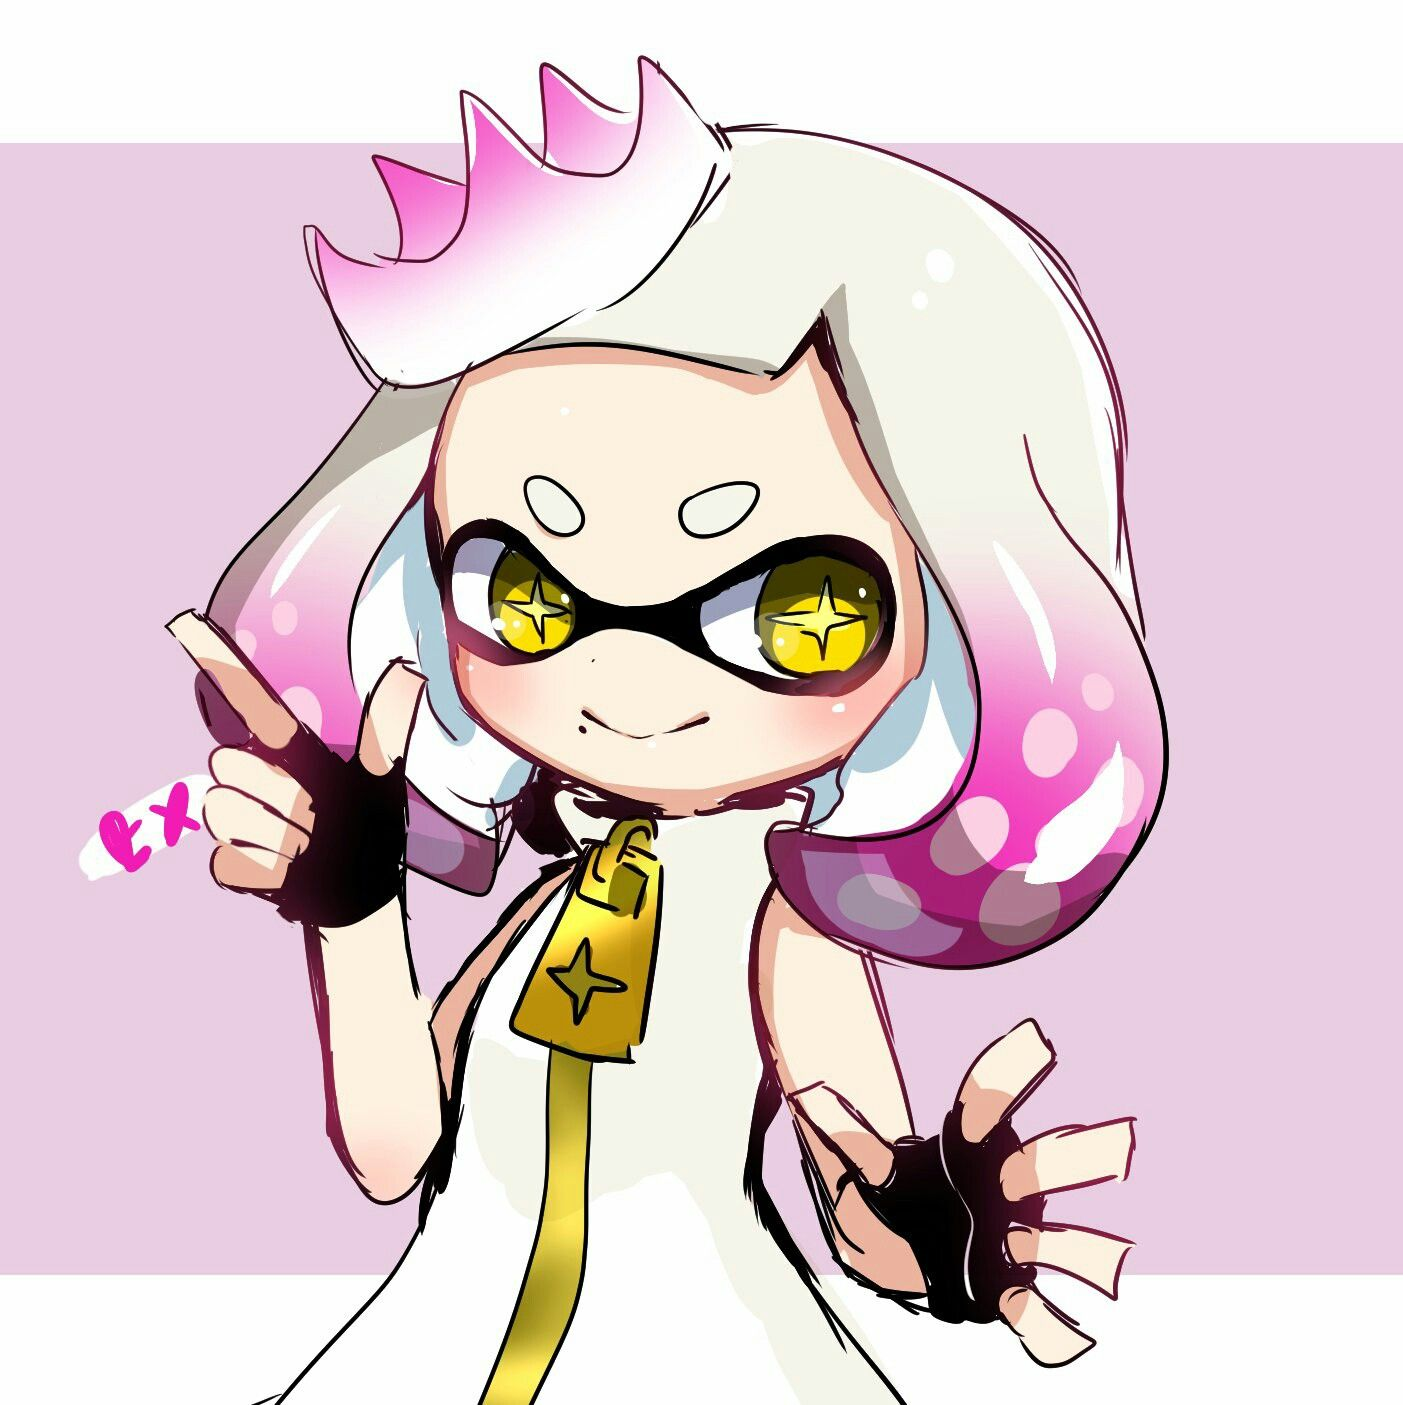 Pearl Splatoon 2 Anime Character Design Splatoon 2 Art